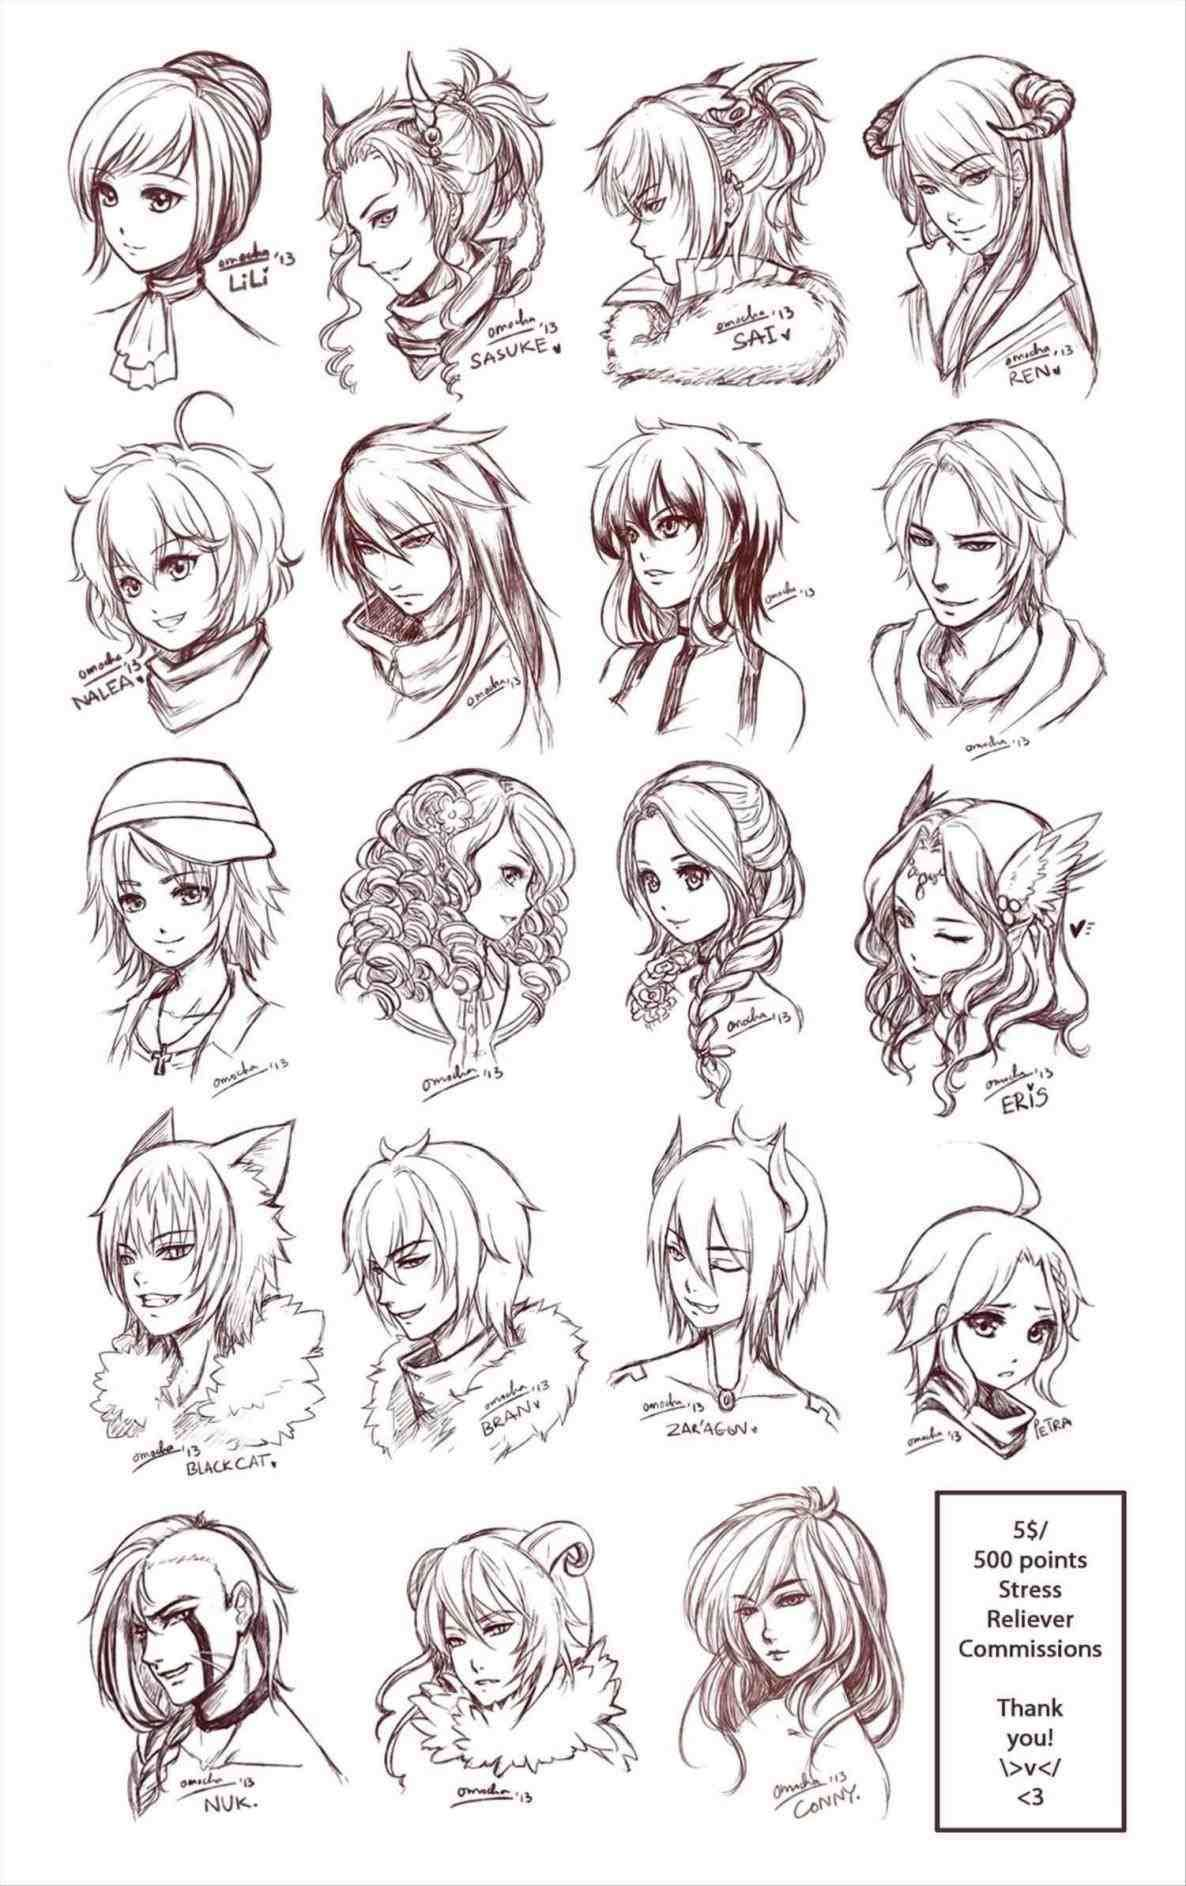 Drawn Curl Messy Bun 2 Drawing Art Drawn Girl Beanie 1 Wwwhaircutcolorcom Naturally Curly Bob With Balayage High And Sketch Head Drawing Sketches Sketches